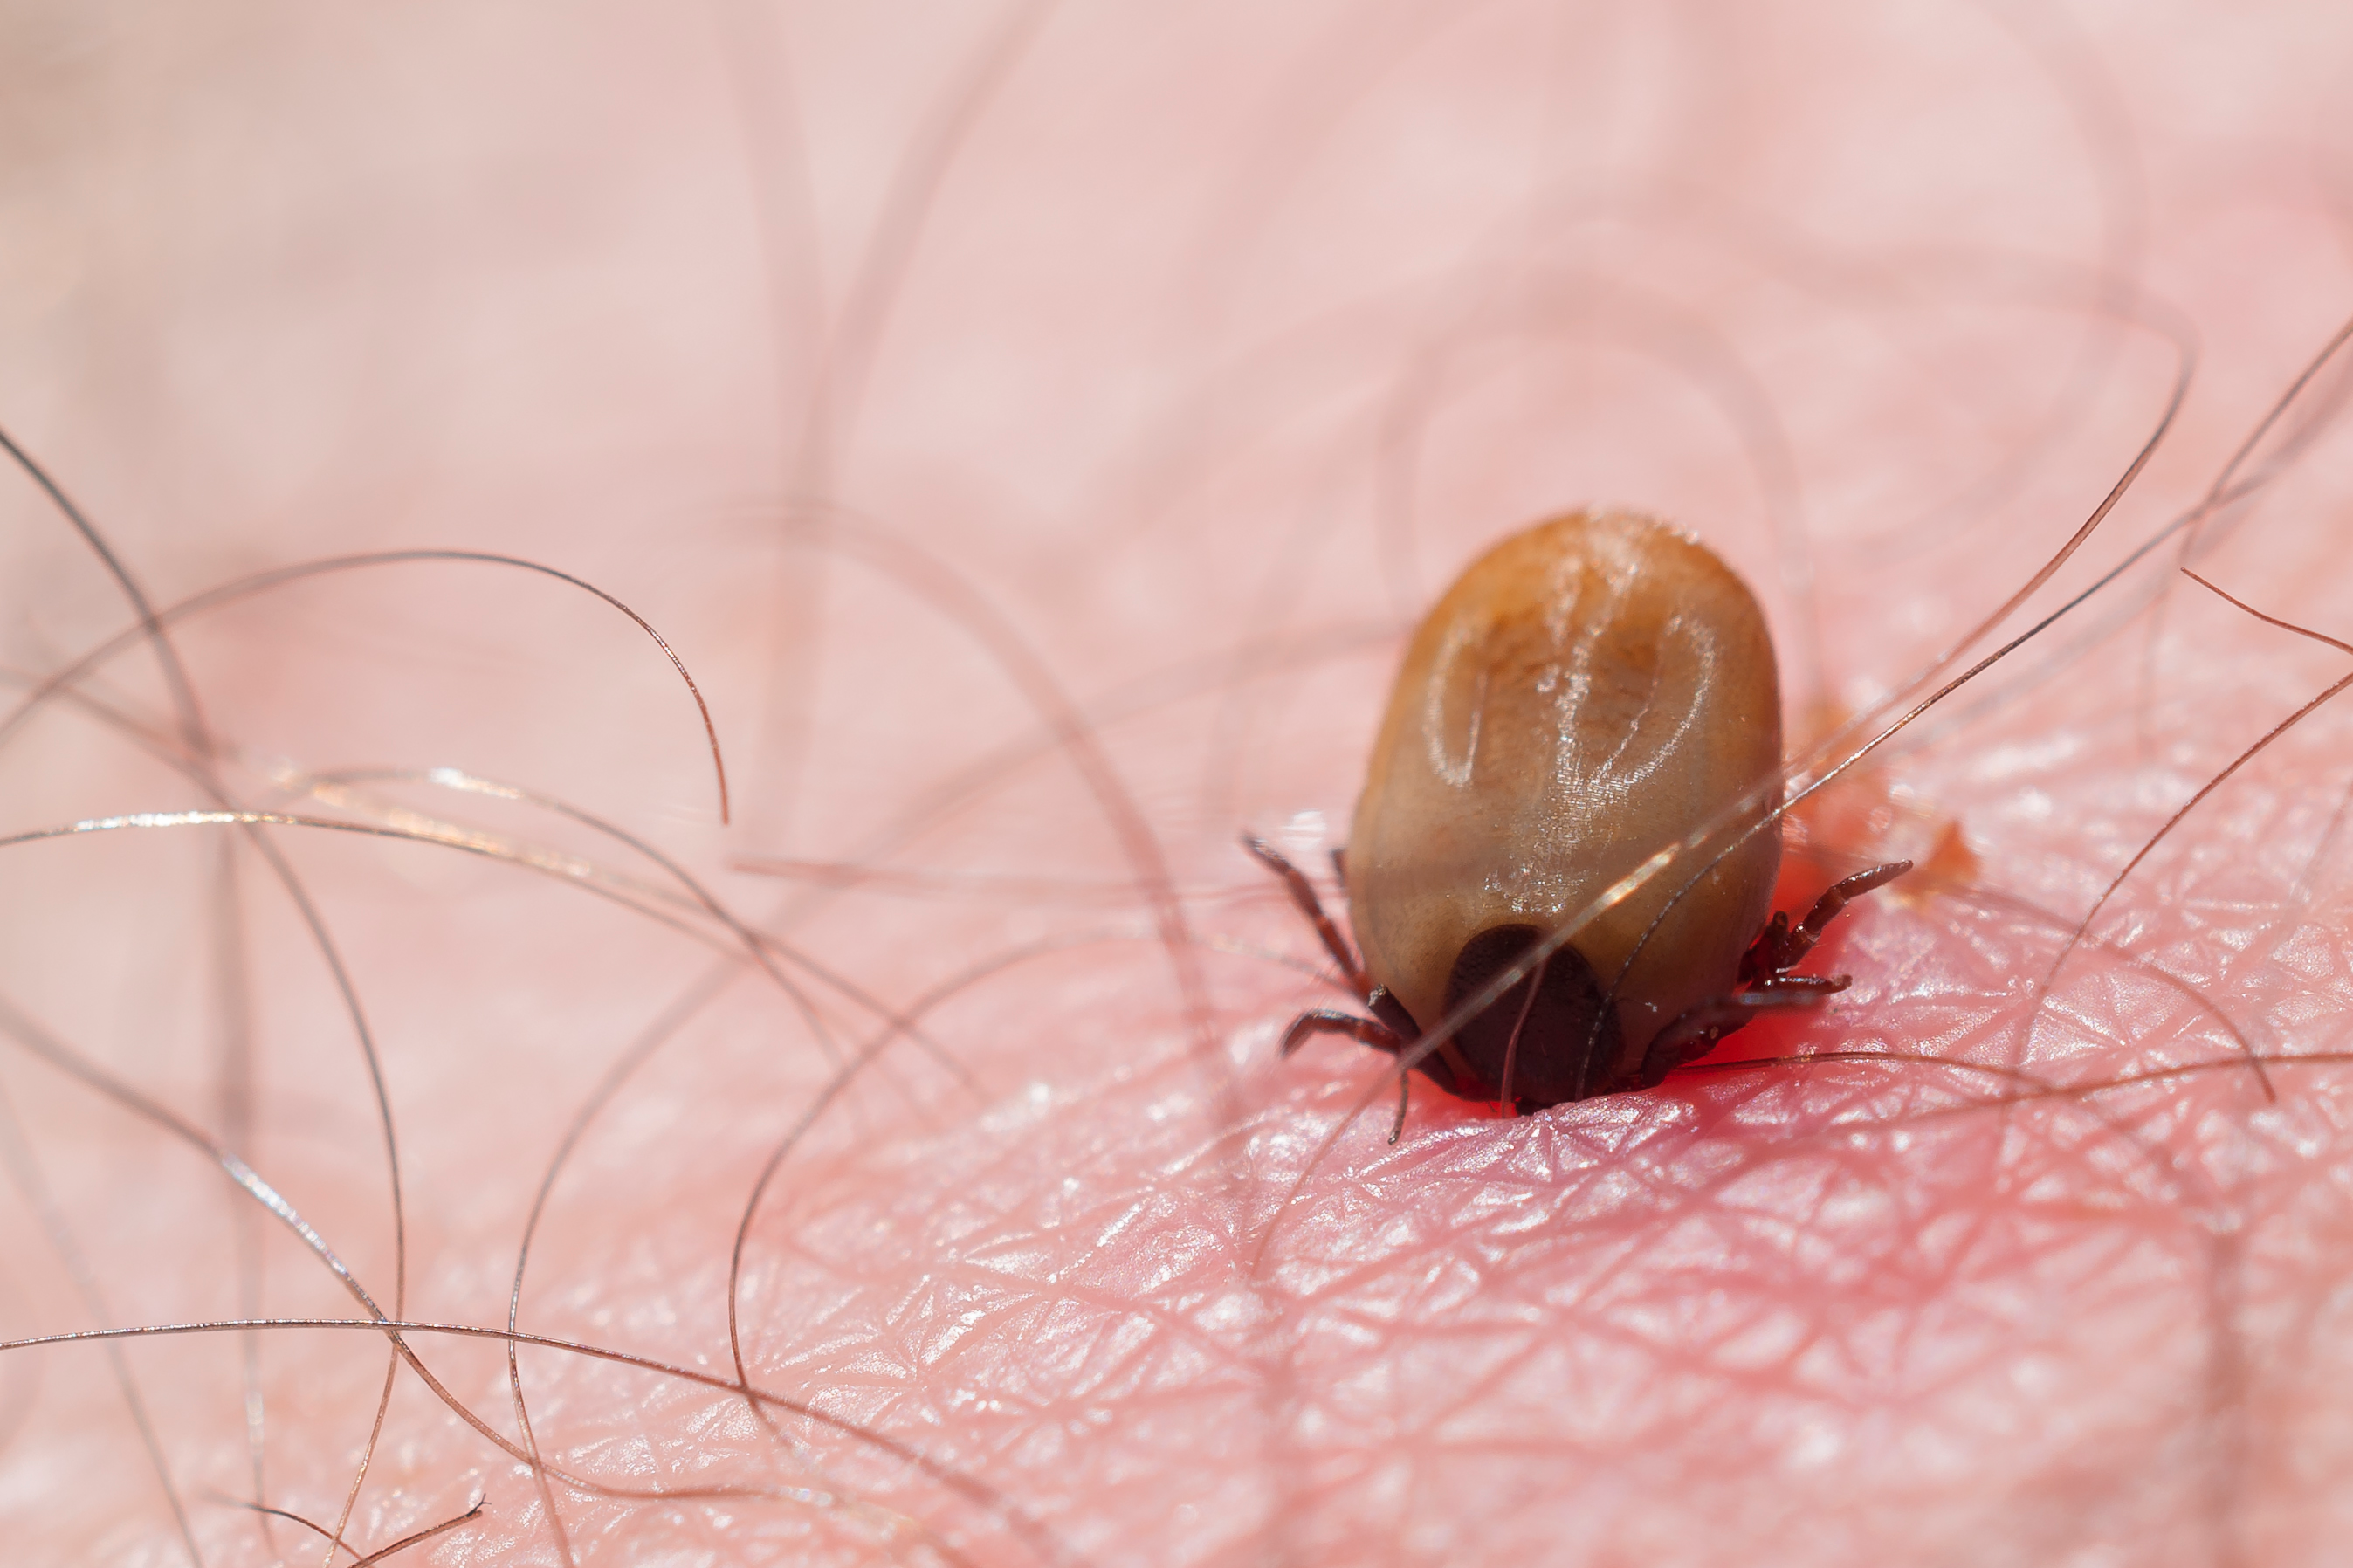 Tick Bite Pictures & Symptoms - What Does a Tick Bite Look Like?